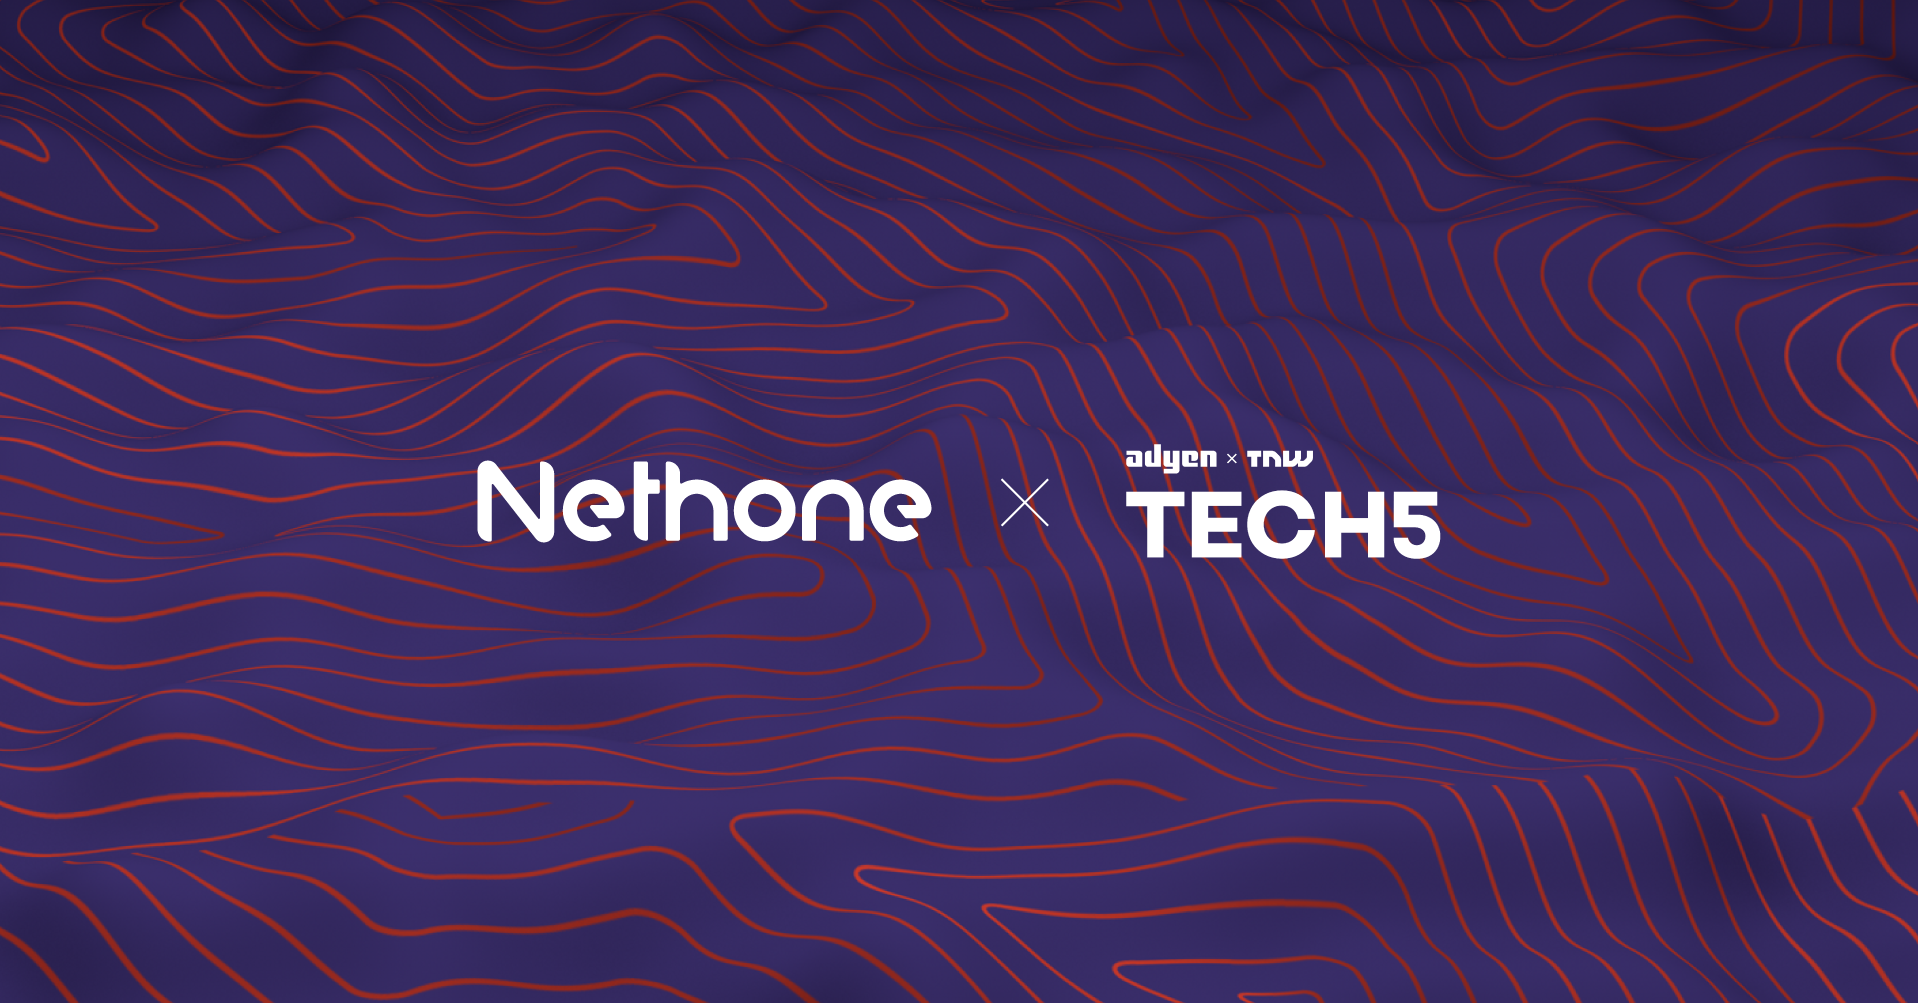 Nethone and Tech5